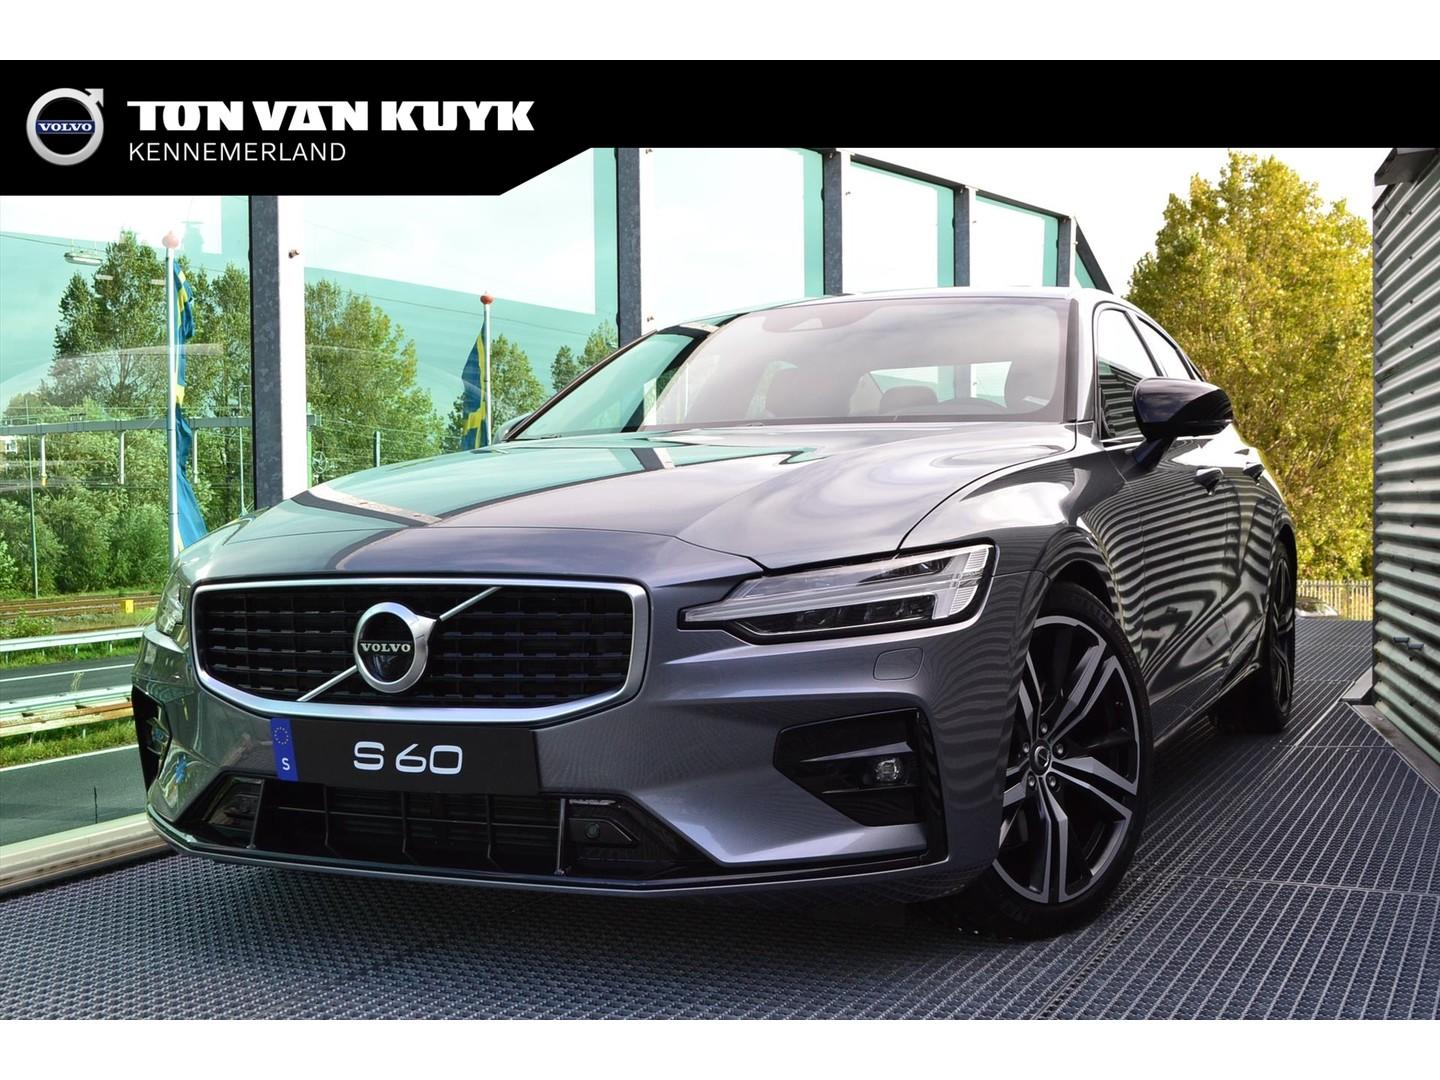 Volvo S60 New t4 r-design / luxury / intellisafe / 360 camera / b en w /